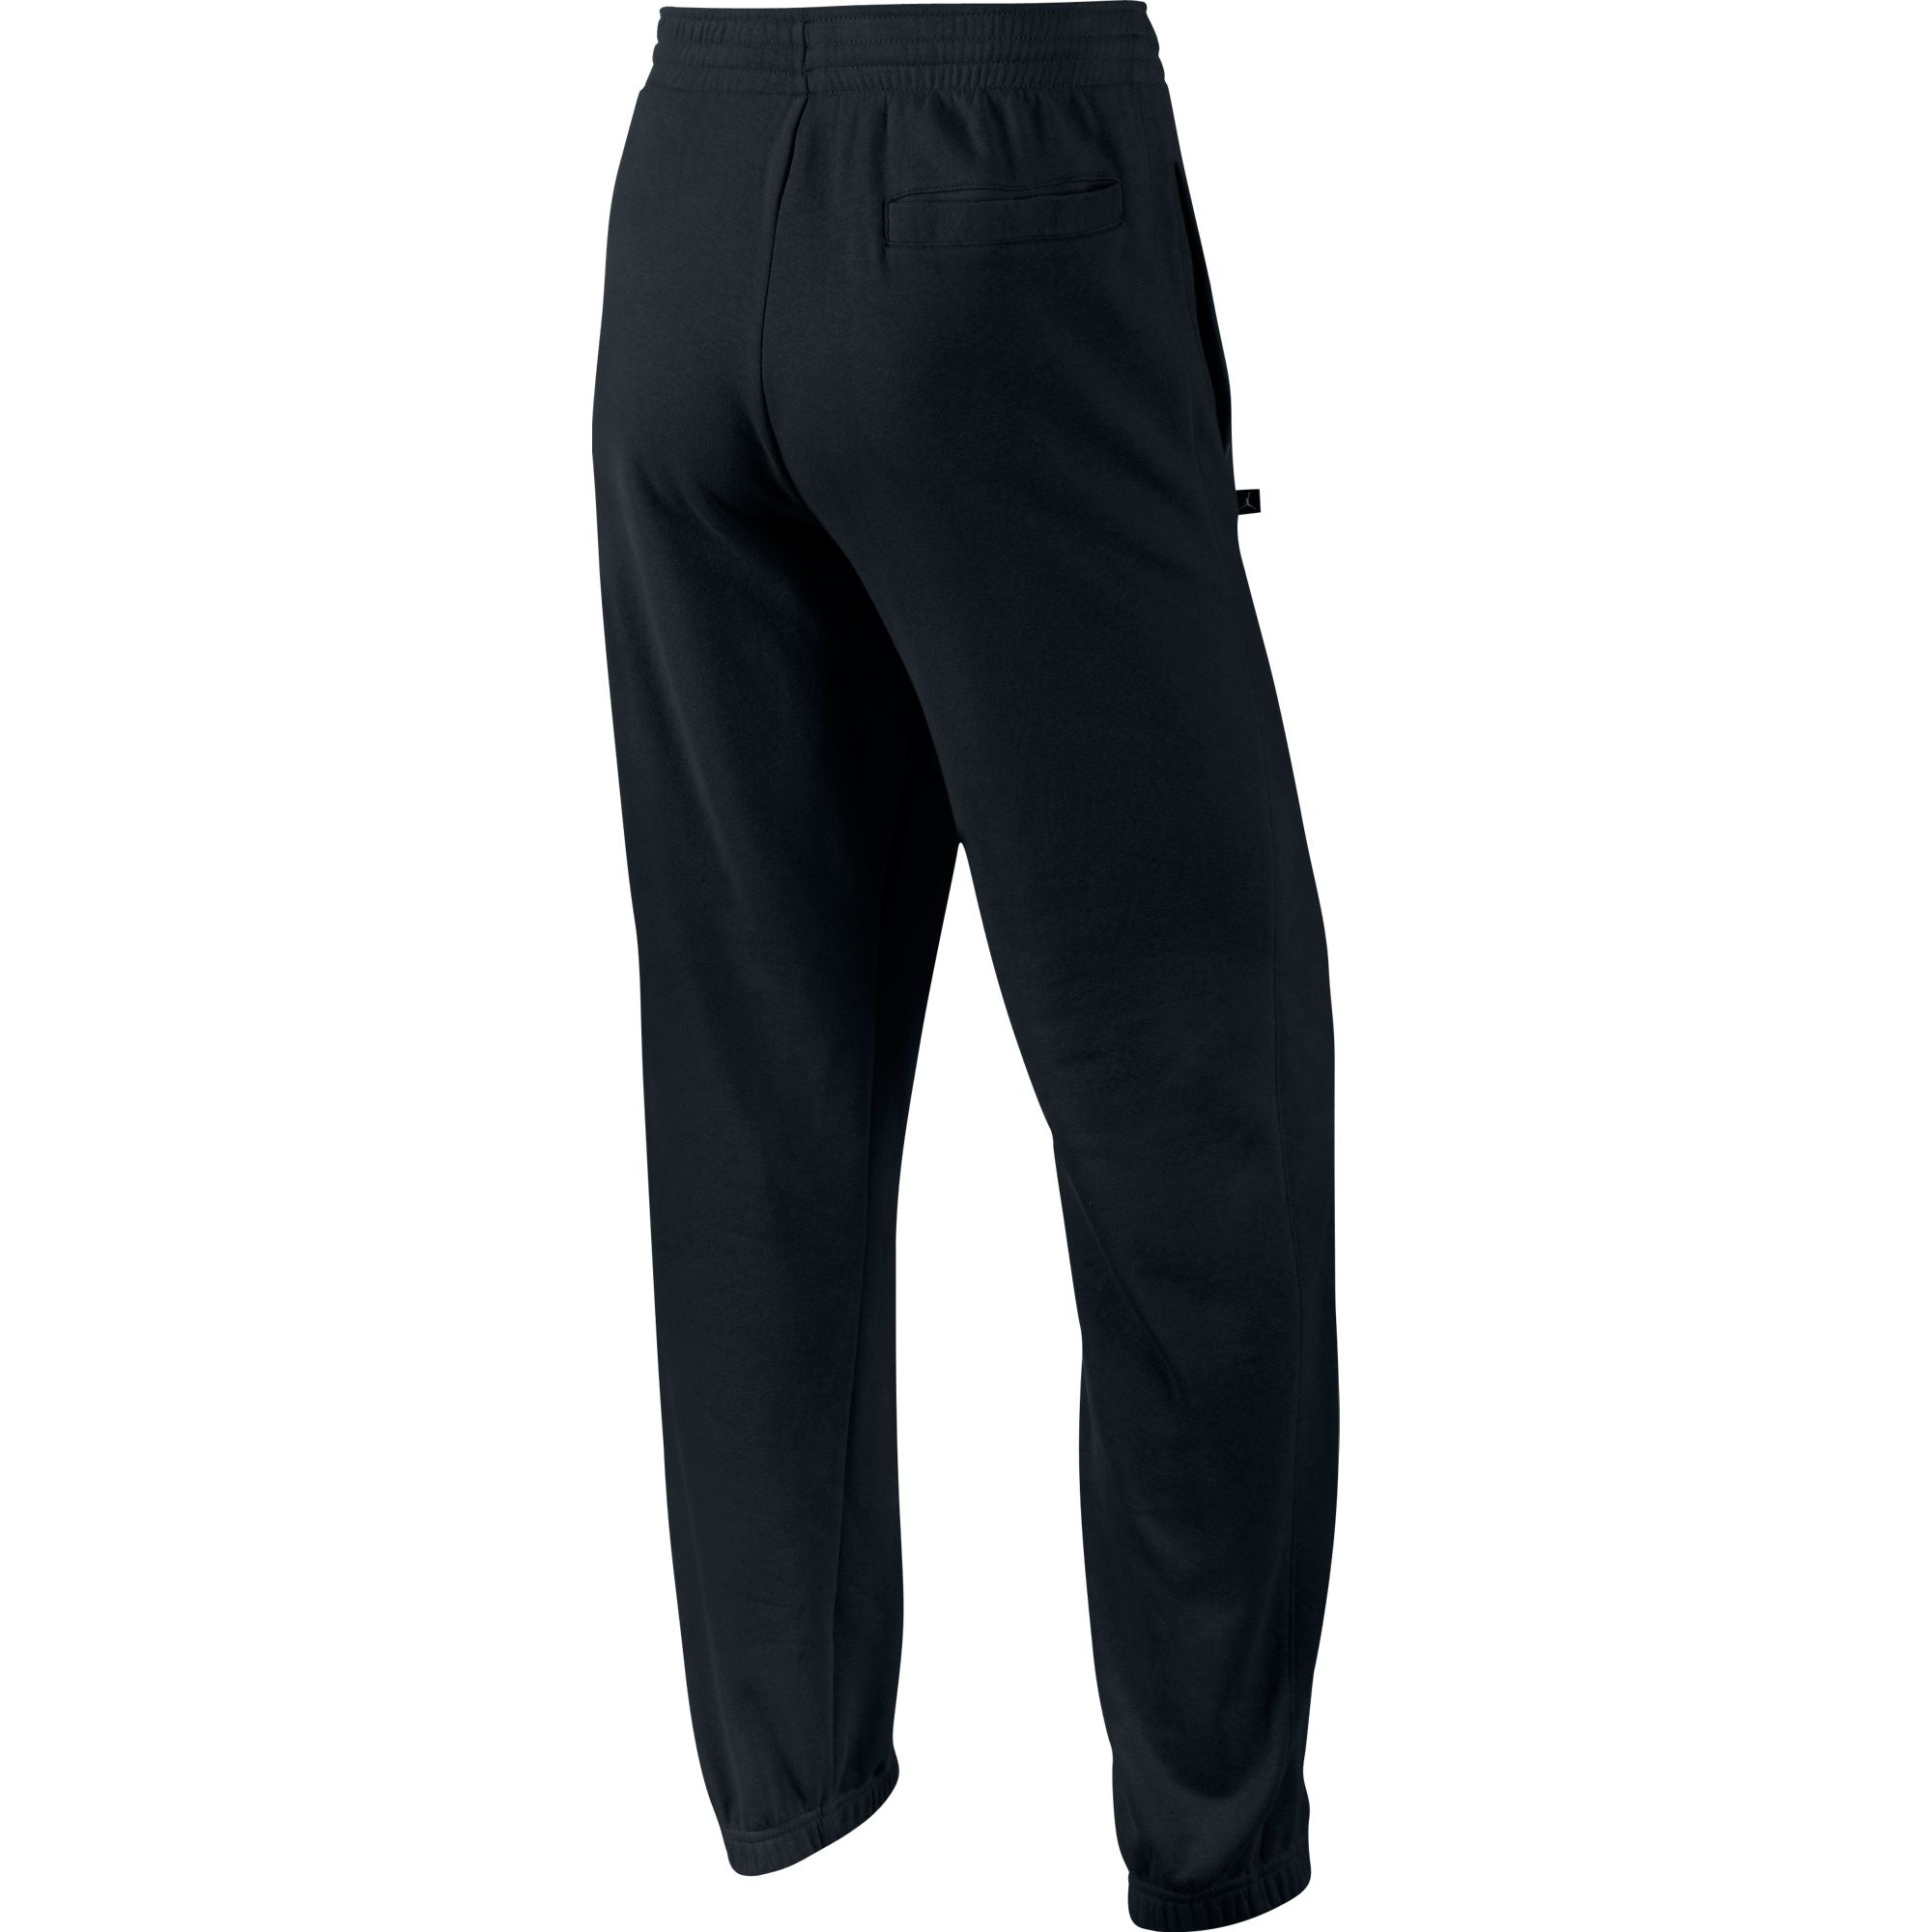 Nike Jordan All-Around Pants - Black/Gym Red